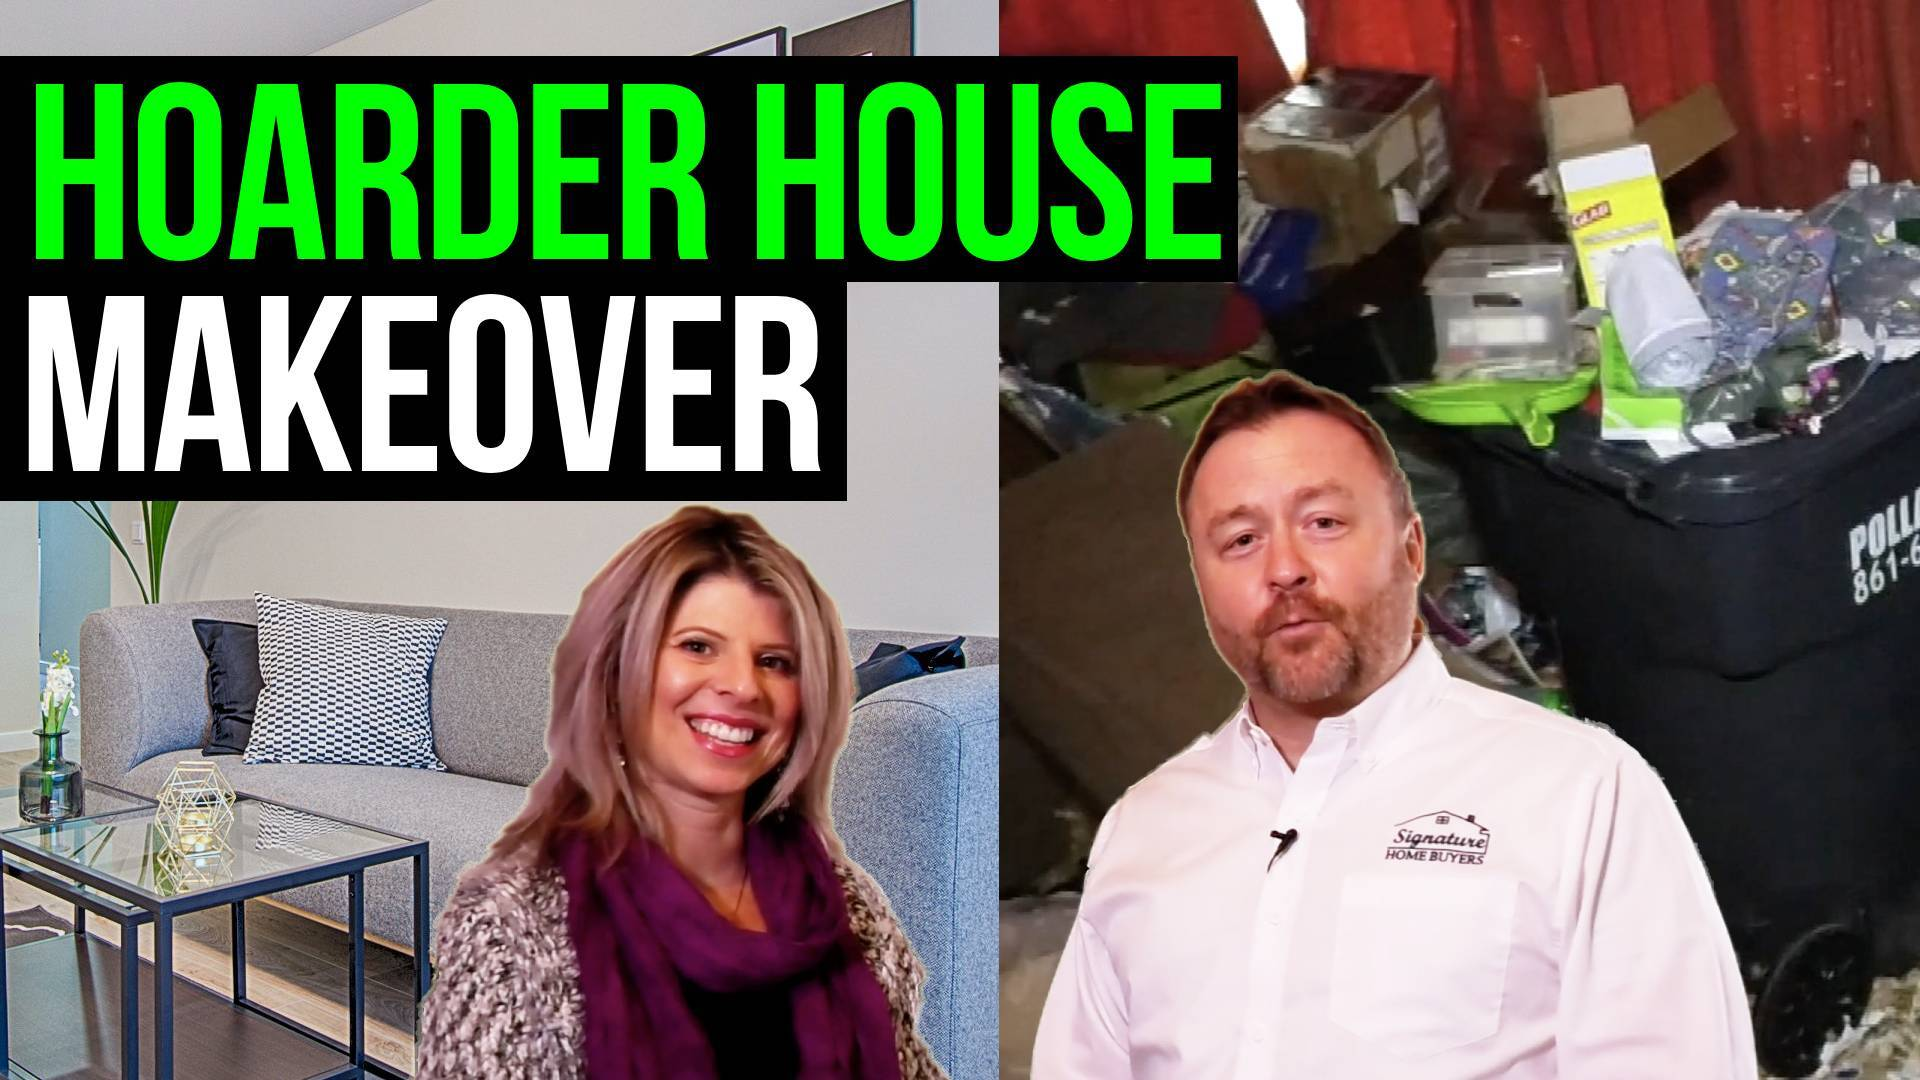 image text reads: hoarder house makeover & renovation